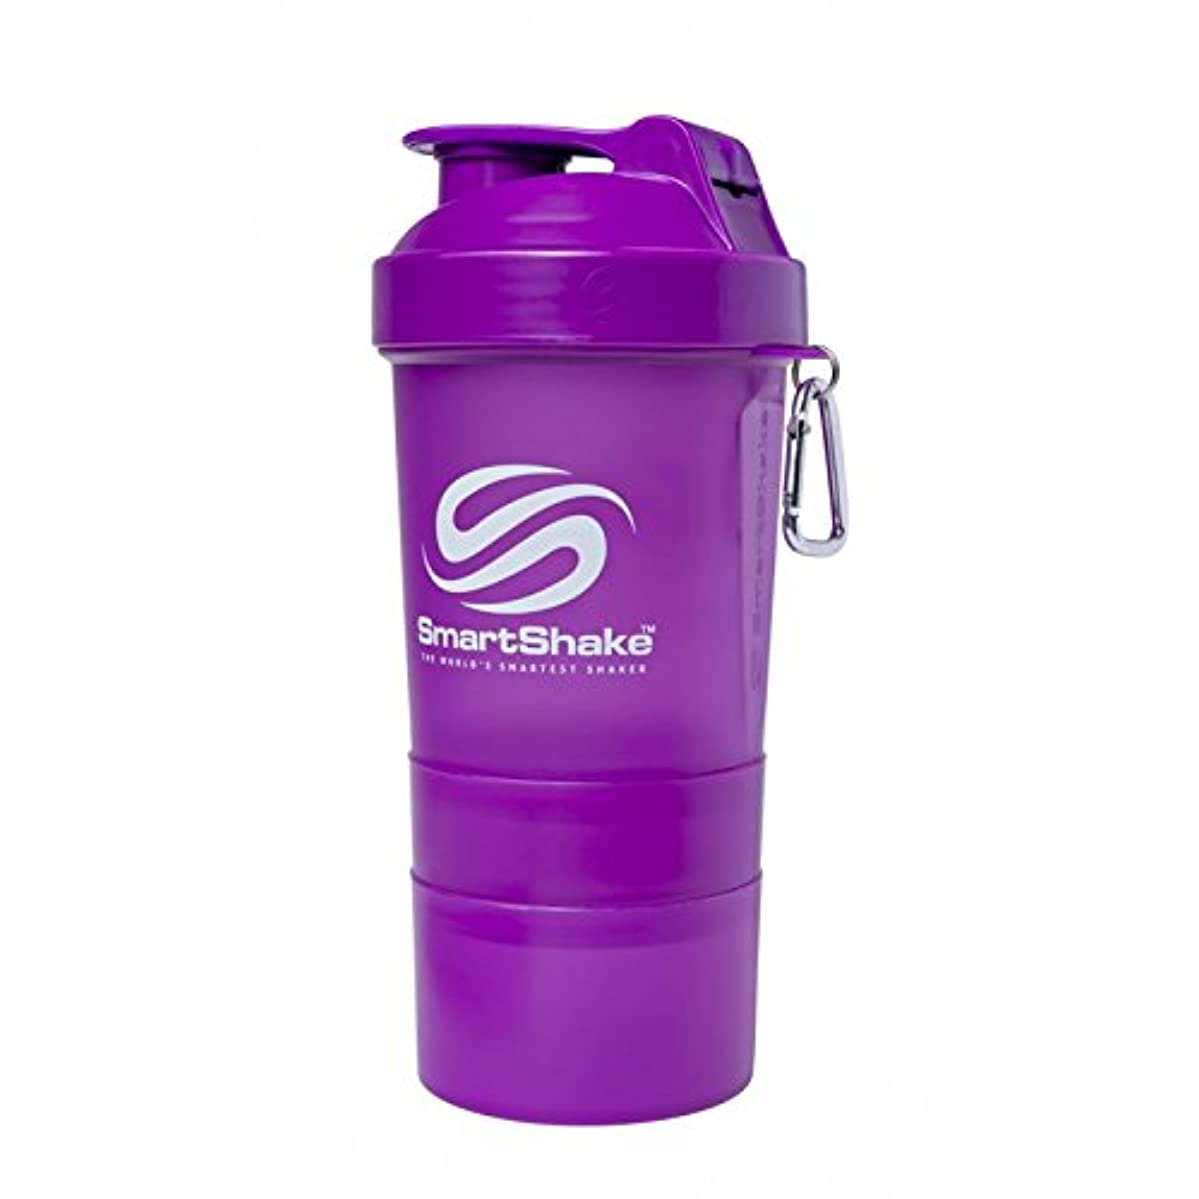 がっかりした地下没頭するSmartShake Original Shaker Cup, Neon Purple, 20 oz by smartshake